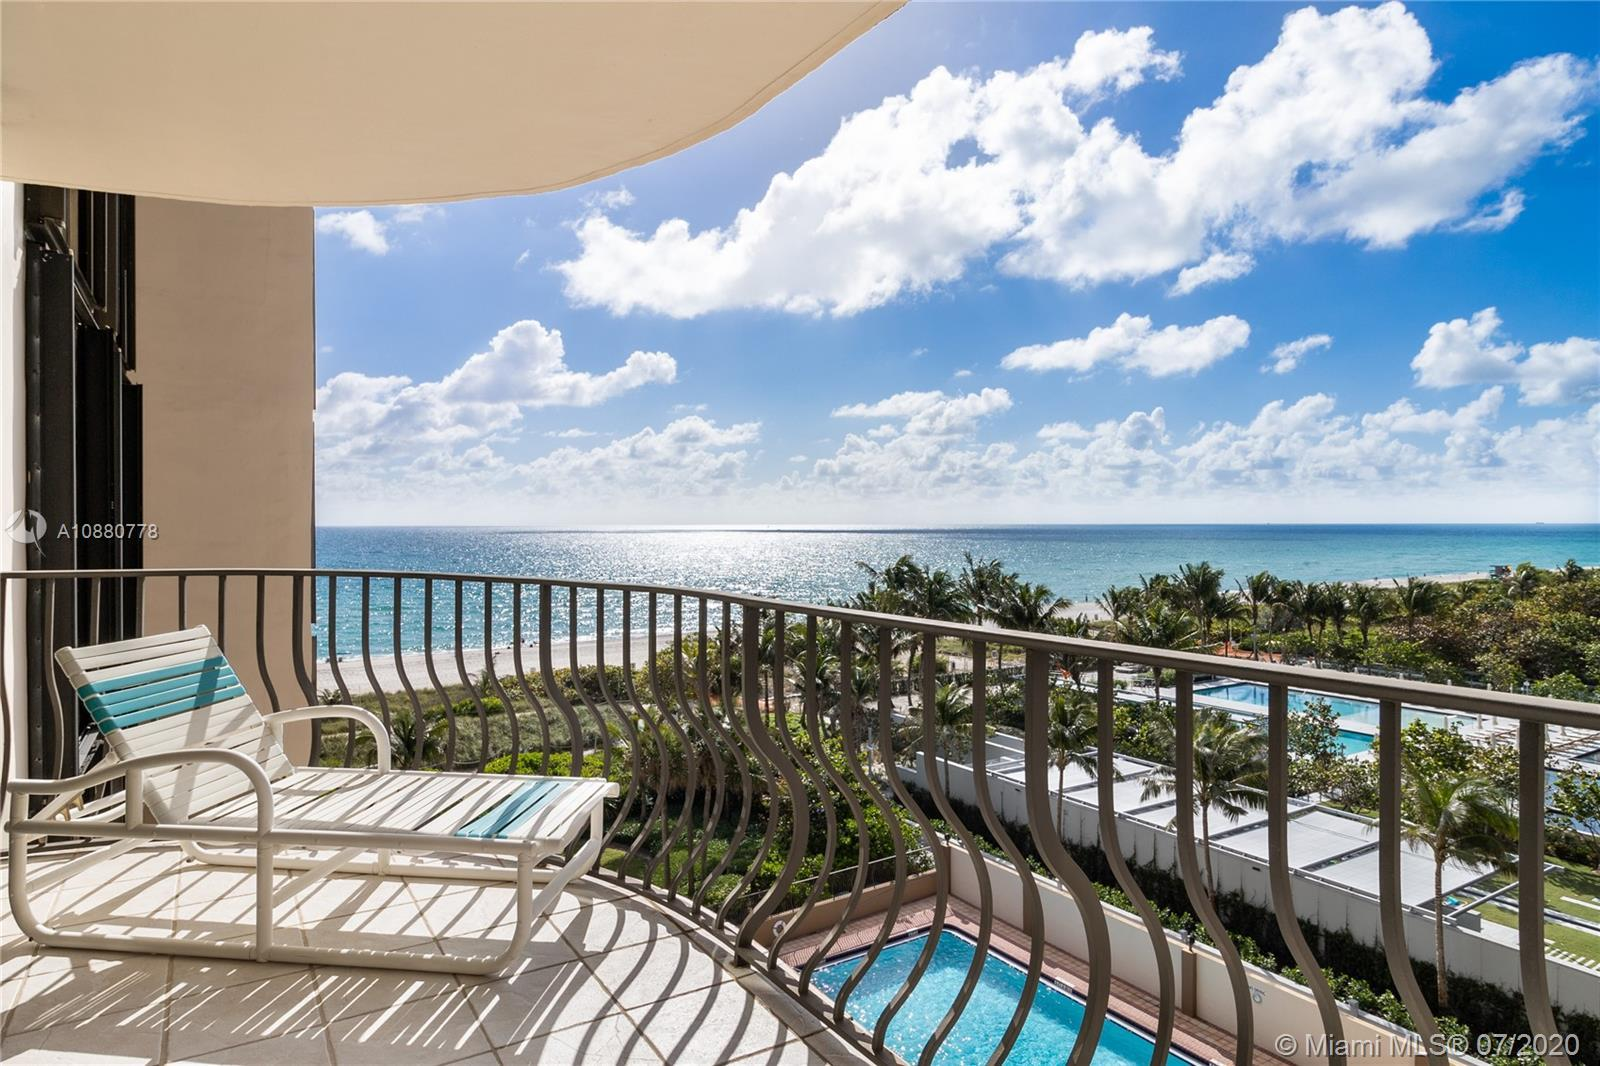 3D Virtual Tour. Wake up every day to incredible ocean views & year-round bay breezes! Amazing oppor